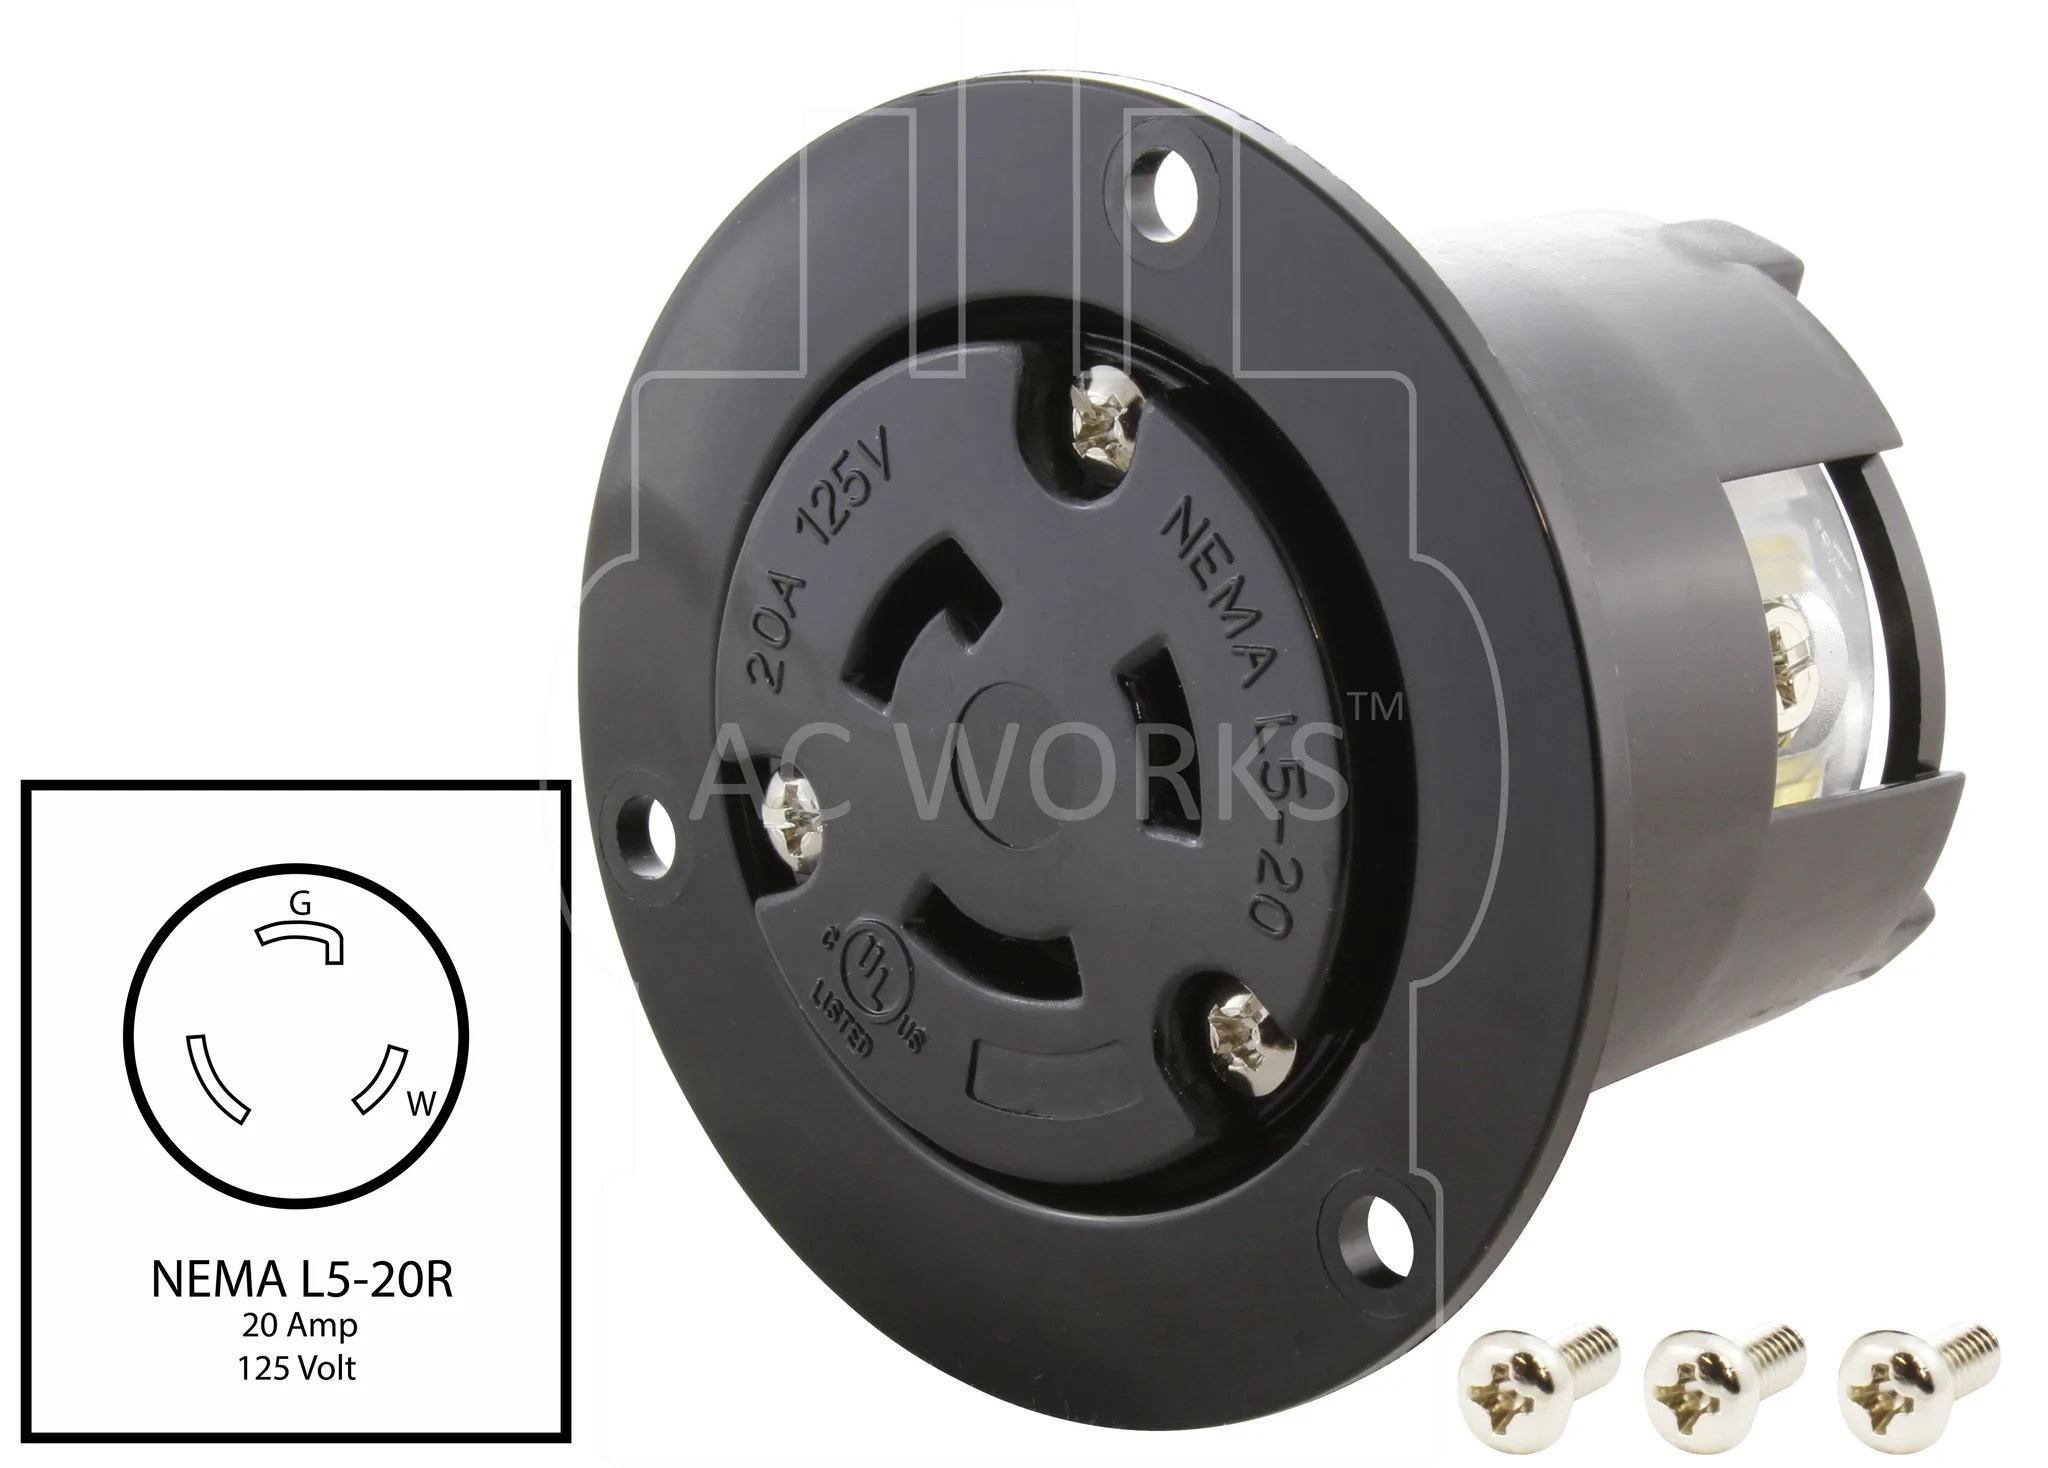 medium resolution of  nema l5 20r outlet wiring device outlet flanged outlet ac works